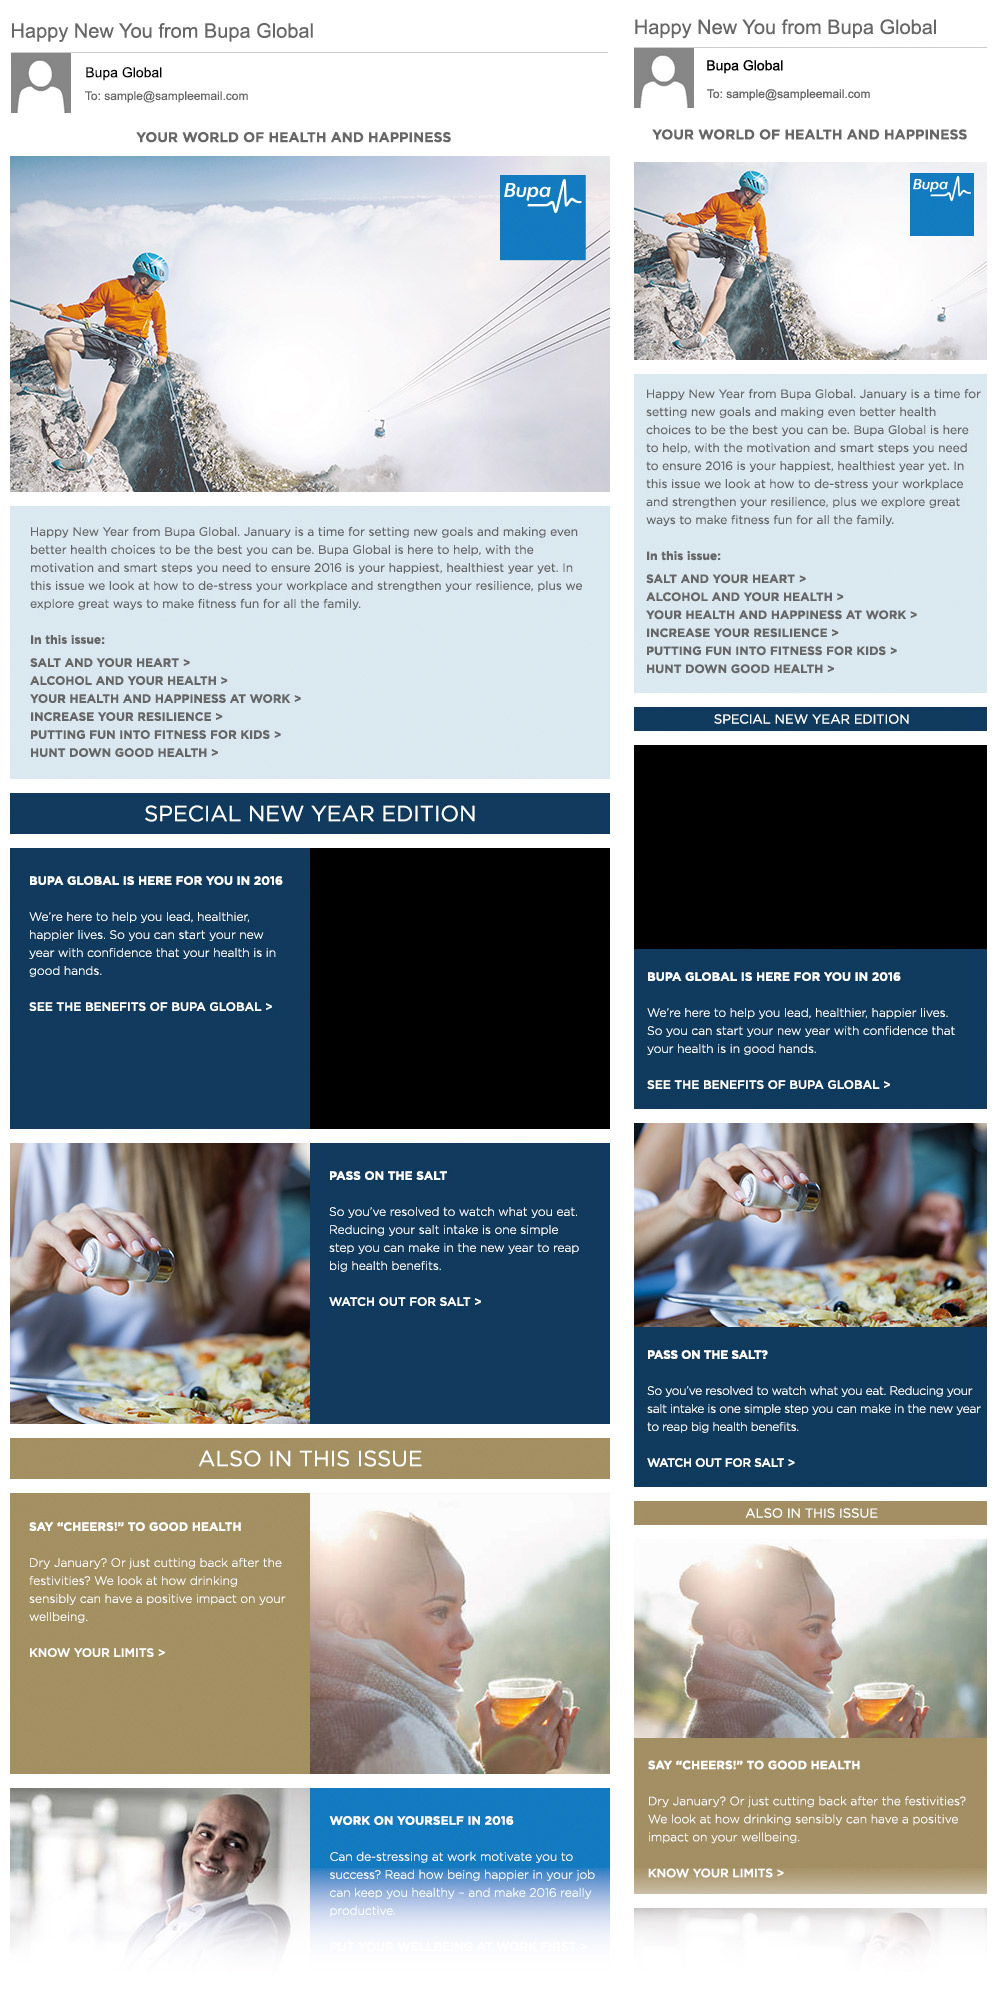 Email newsletter template designs mocked up for desktop and mobile for client approval.